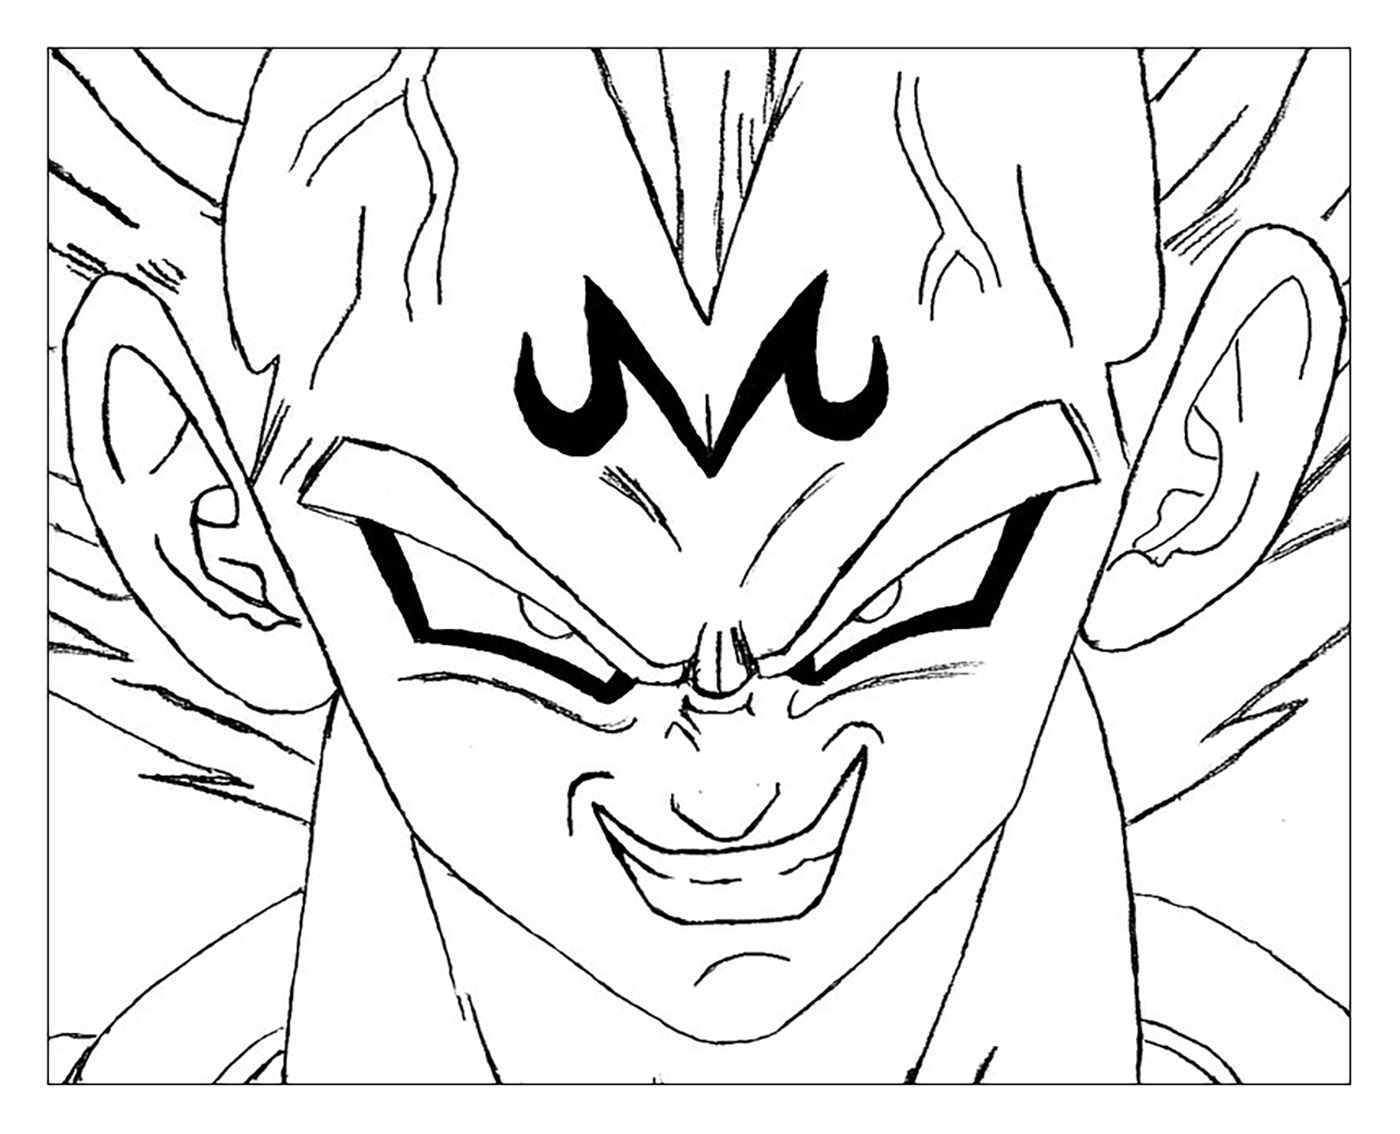 Facile dragon ball majin vegeta coloriage dragon ball z - Dessin de dragon ball za imprimer ...